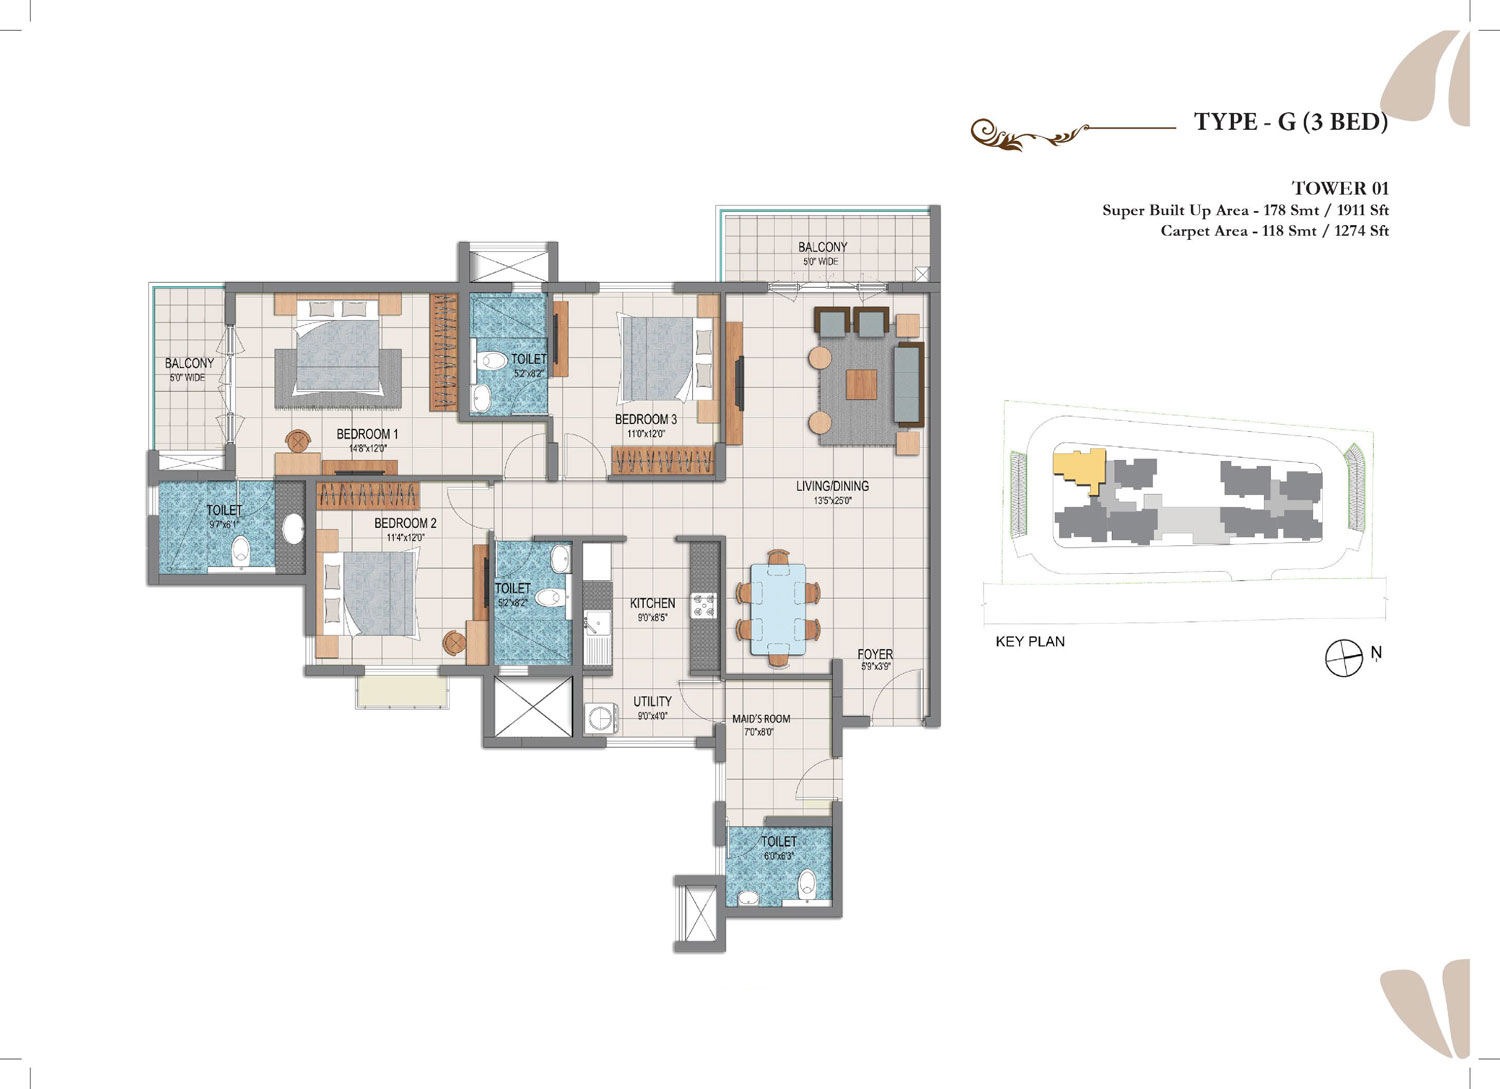 Type G - 3 Bed - 1911 Sq Ft